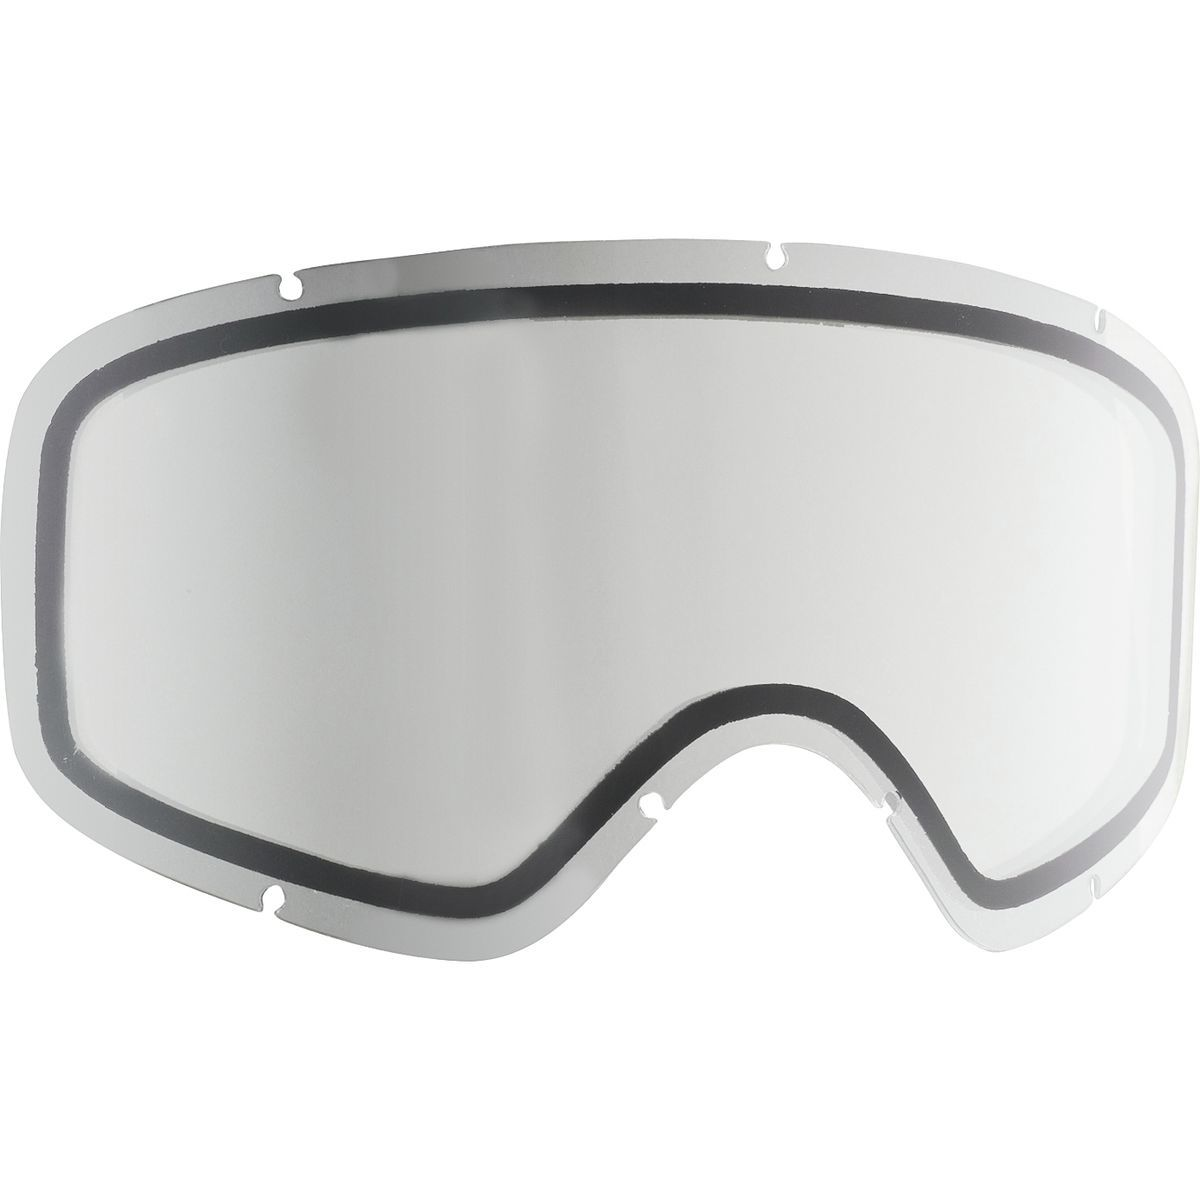 Anon Insight Goggles Replacement Lens - Women's